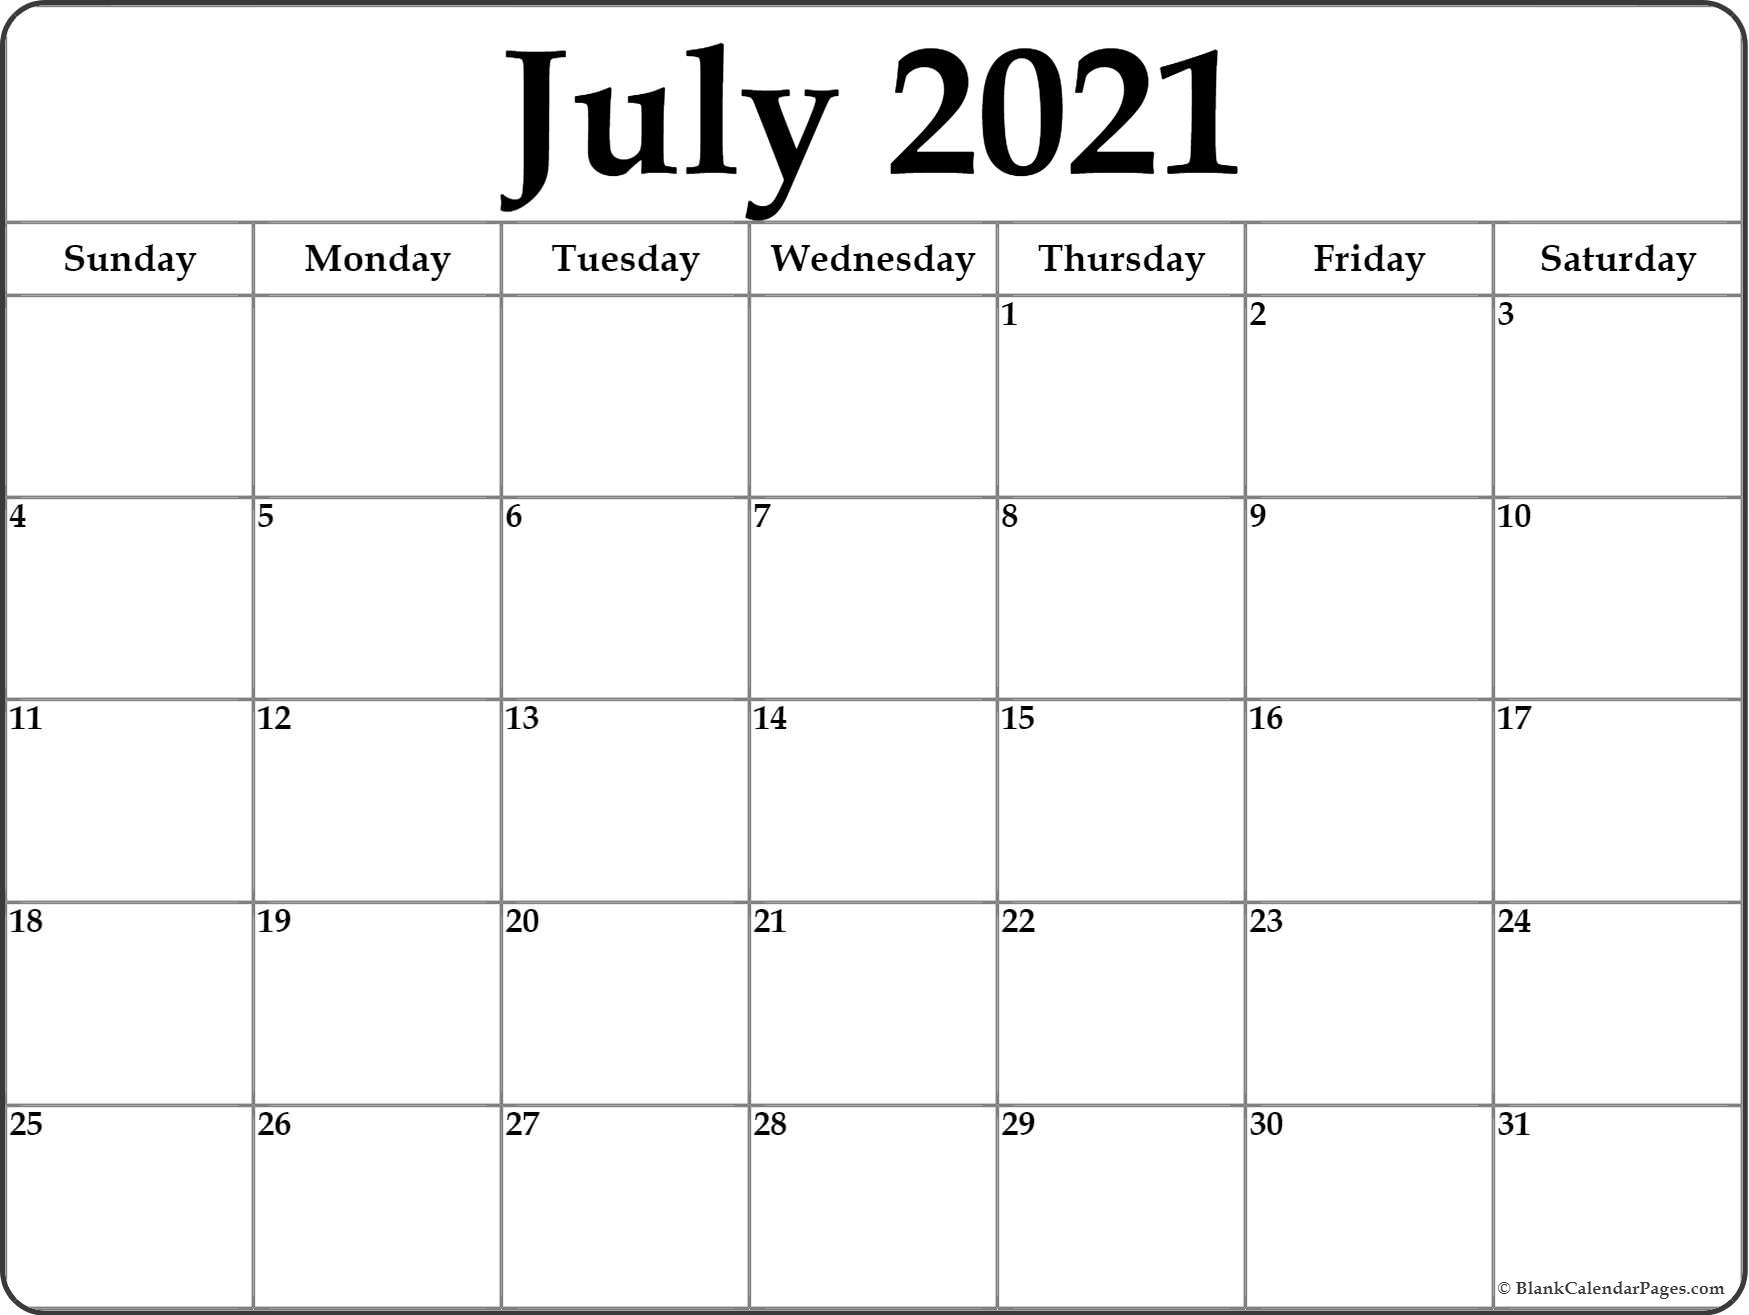 July 2021 Calendar | Free Printable Monthly Calendars  Summer Months 2021 Calendar